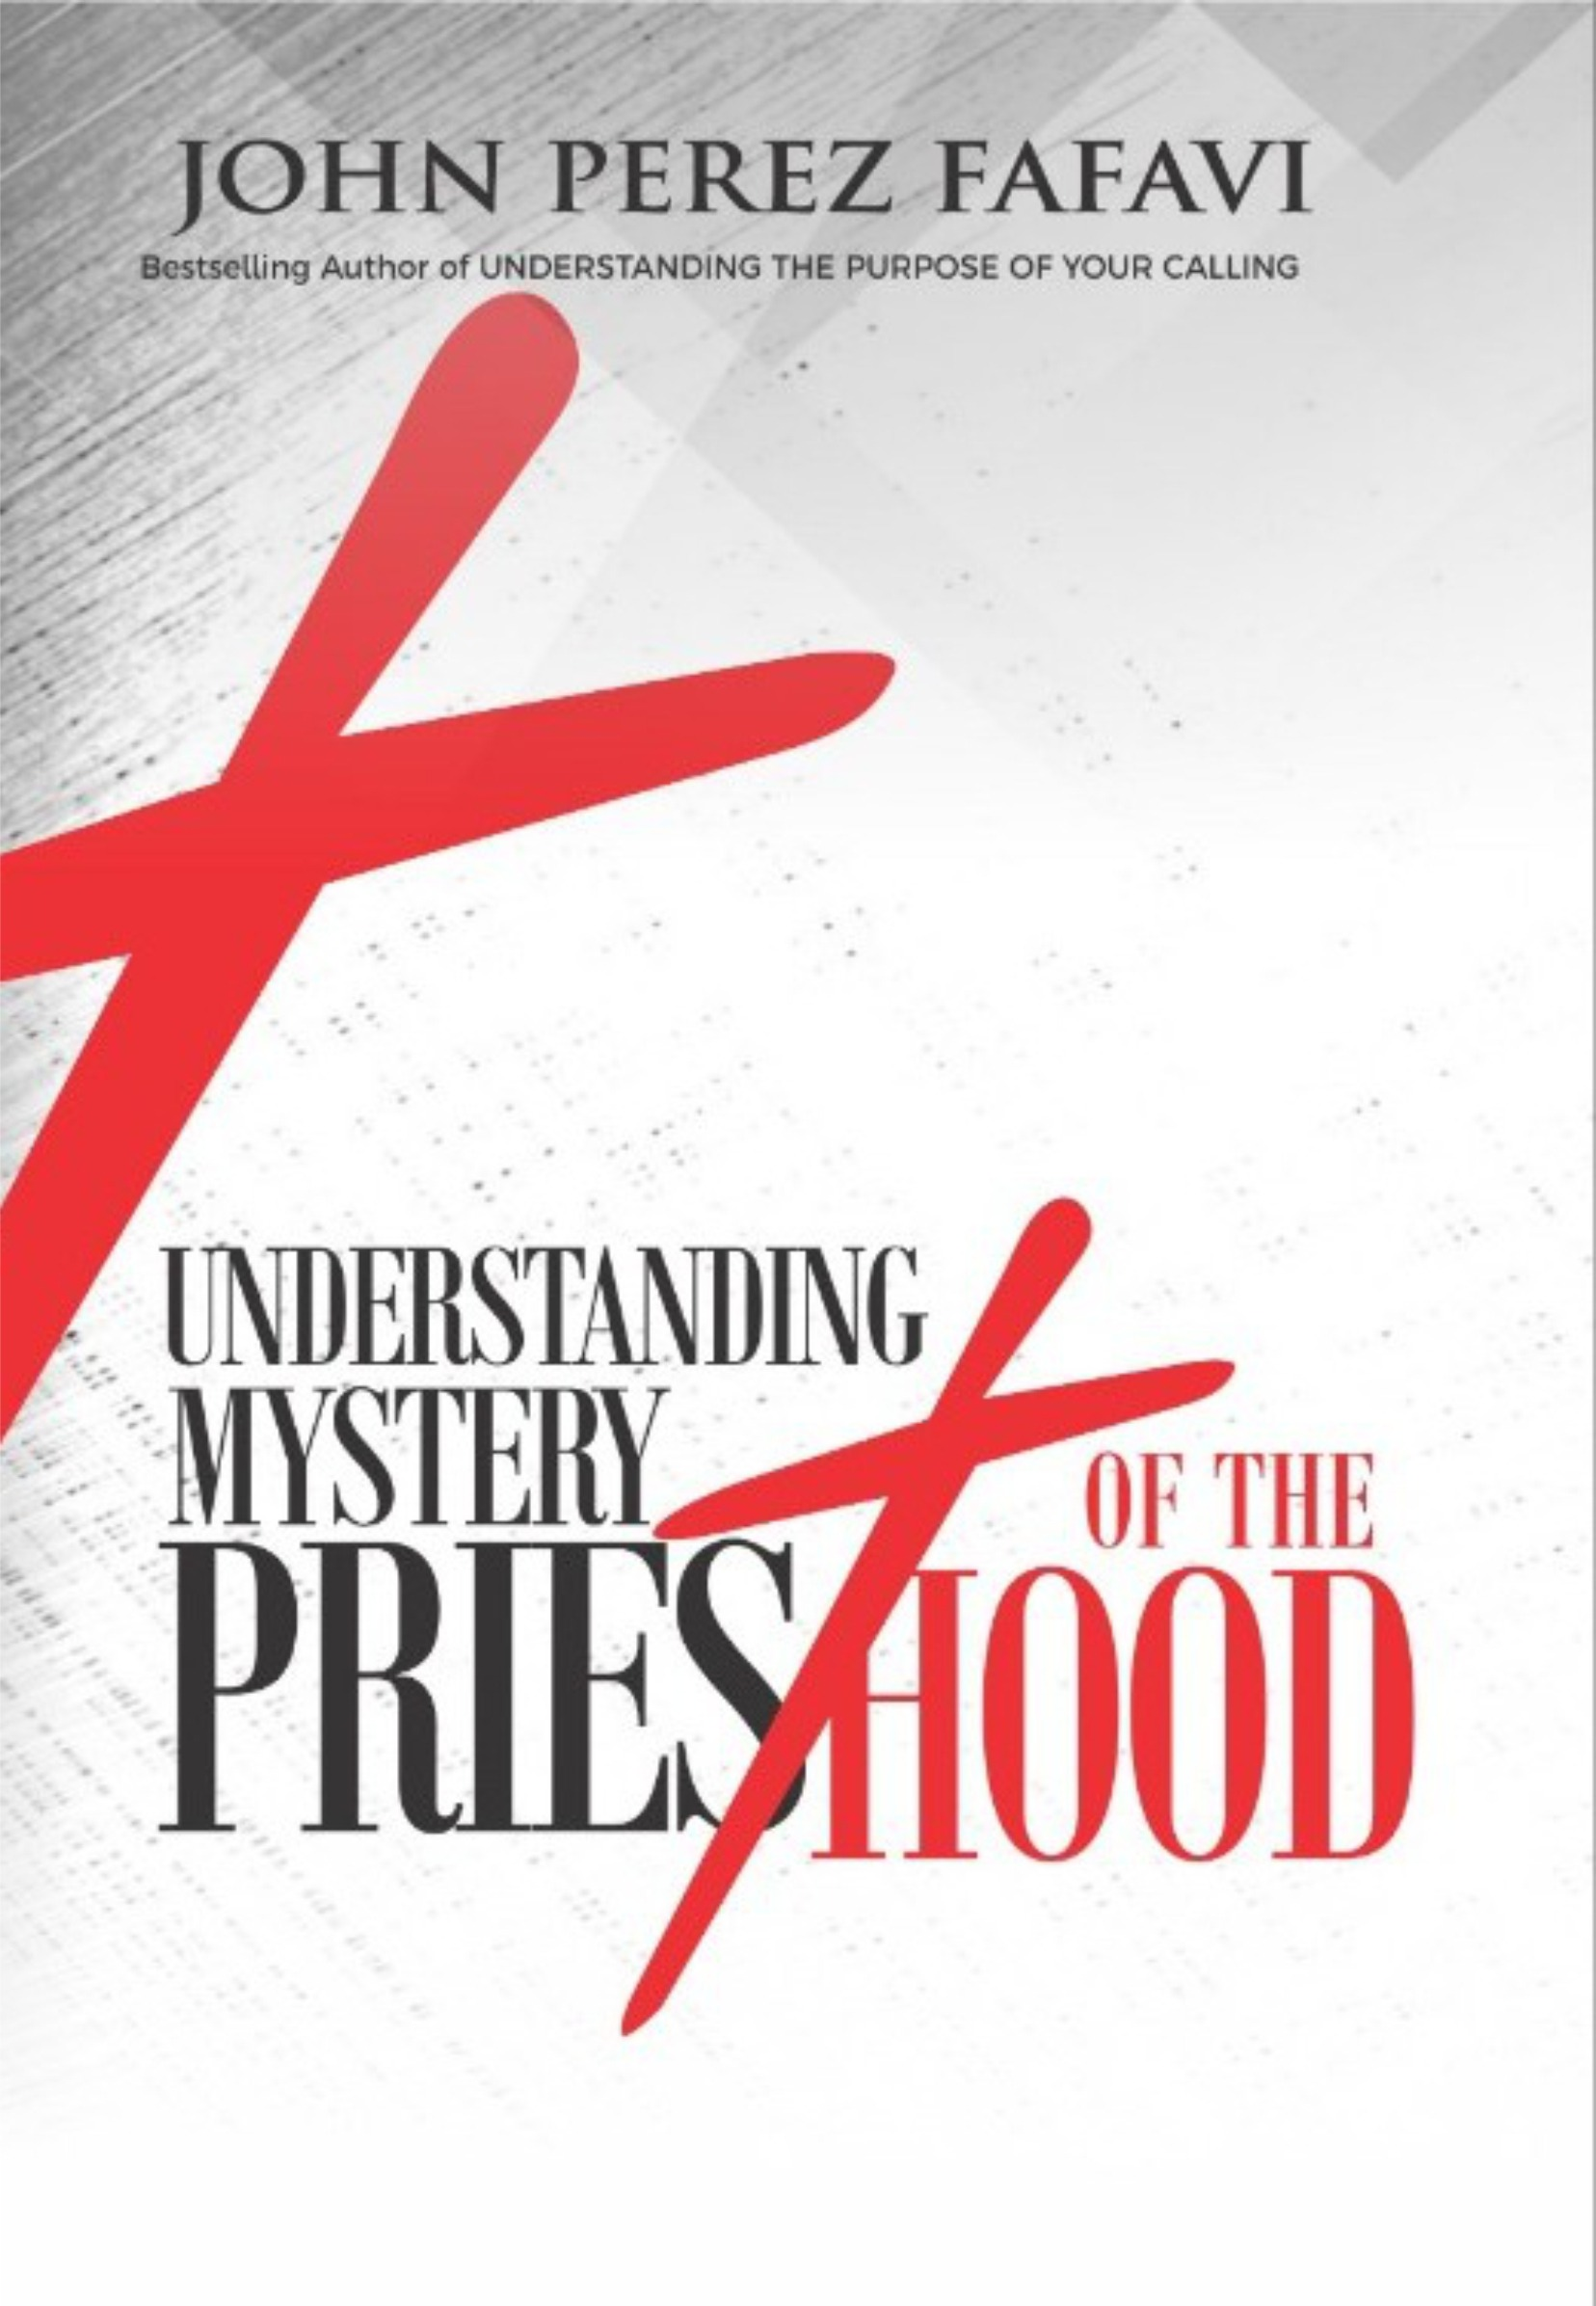 UNDERSTANDING THE MYSTERY OF THE PRIESTHOOD